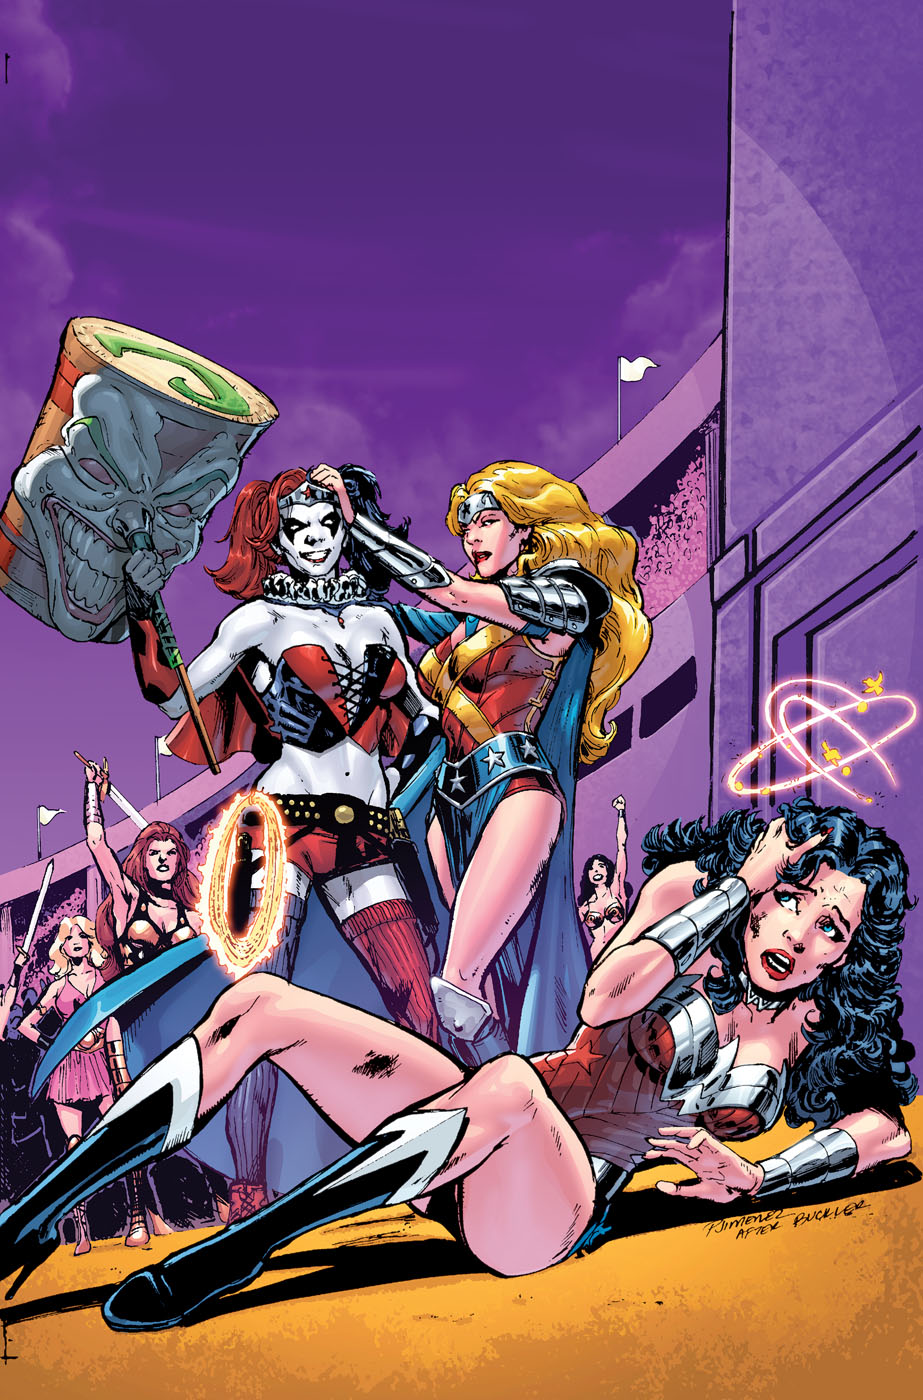 Wonder Woman Vol 4 39 Textless Harley Quinn Variant.jpg